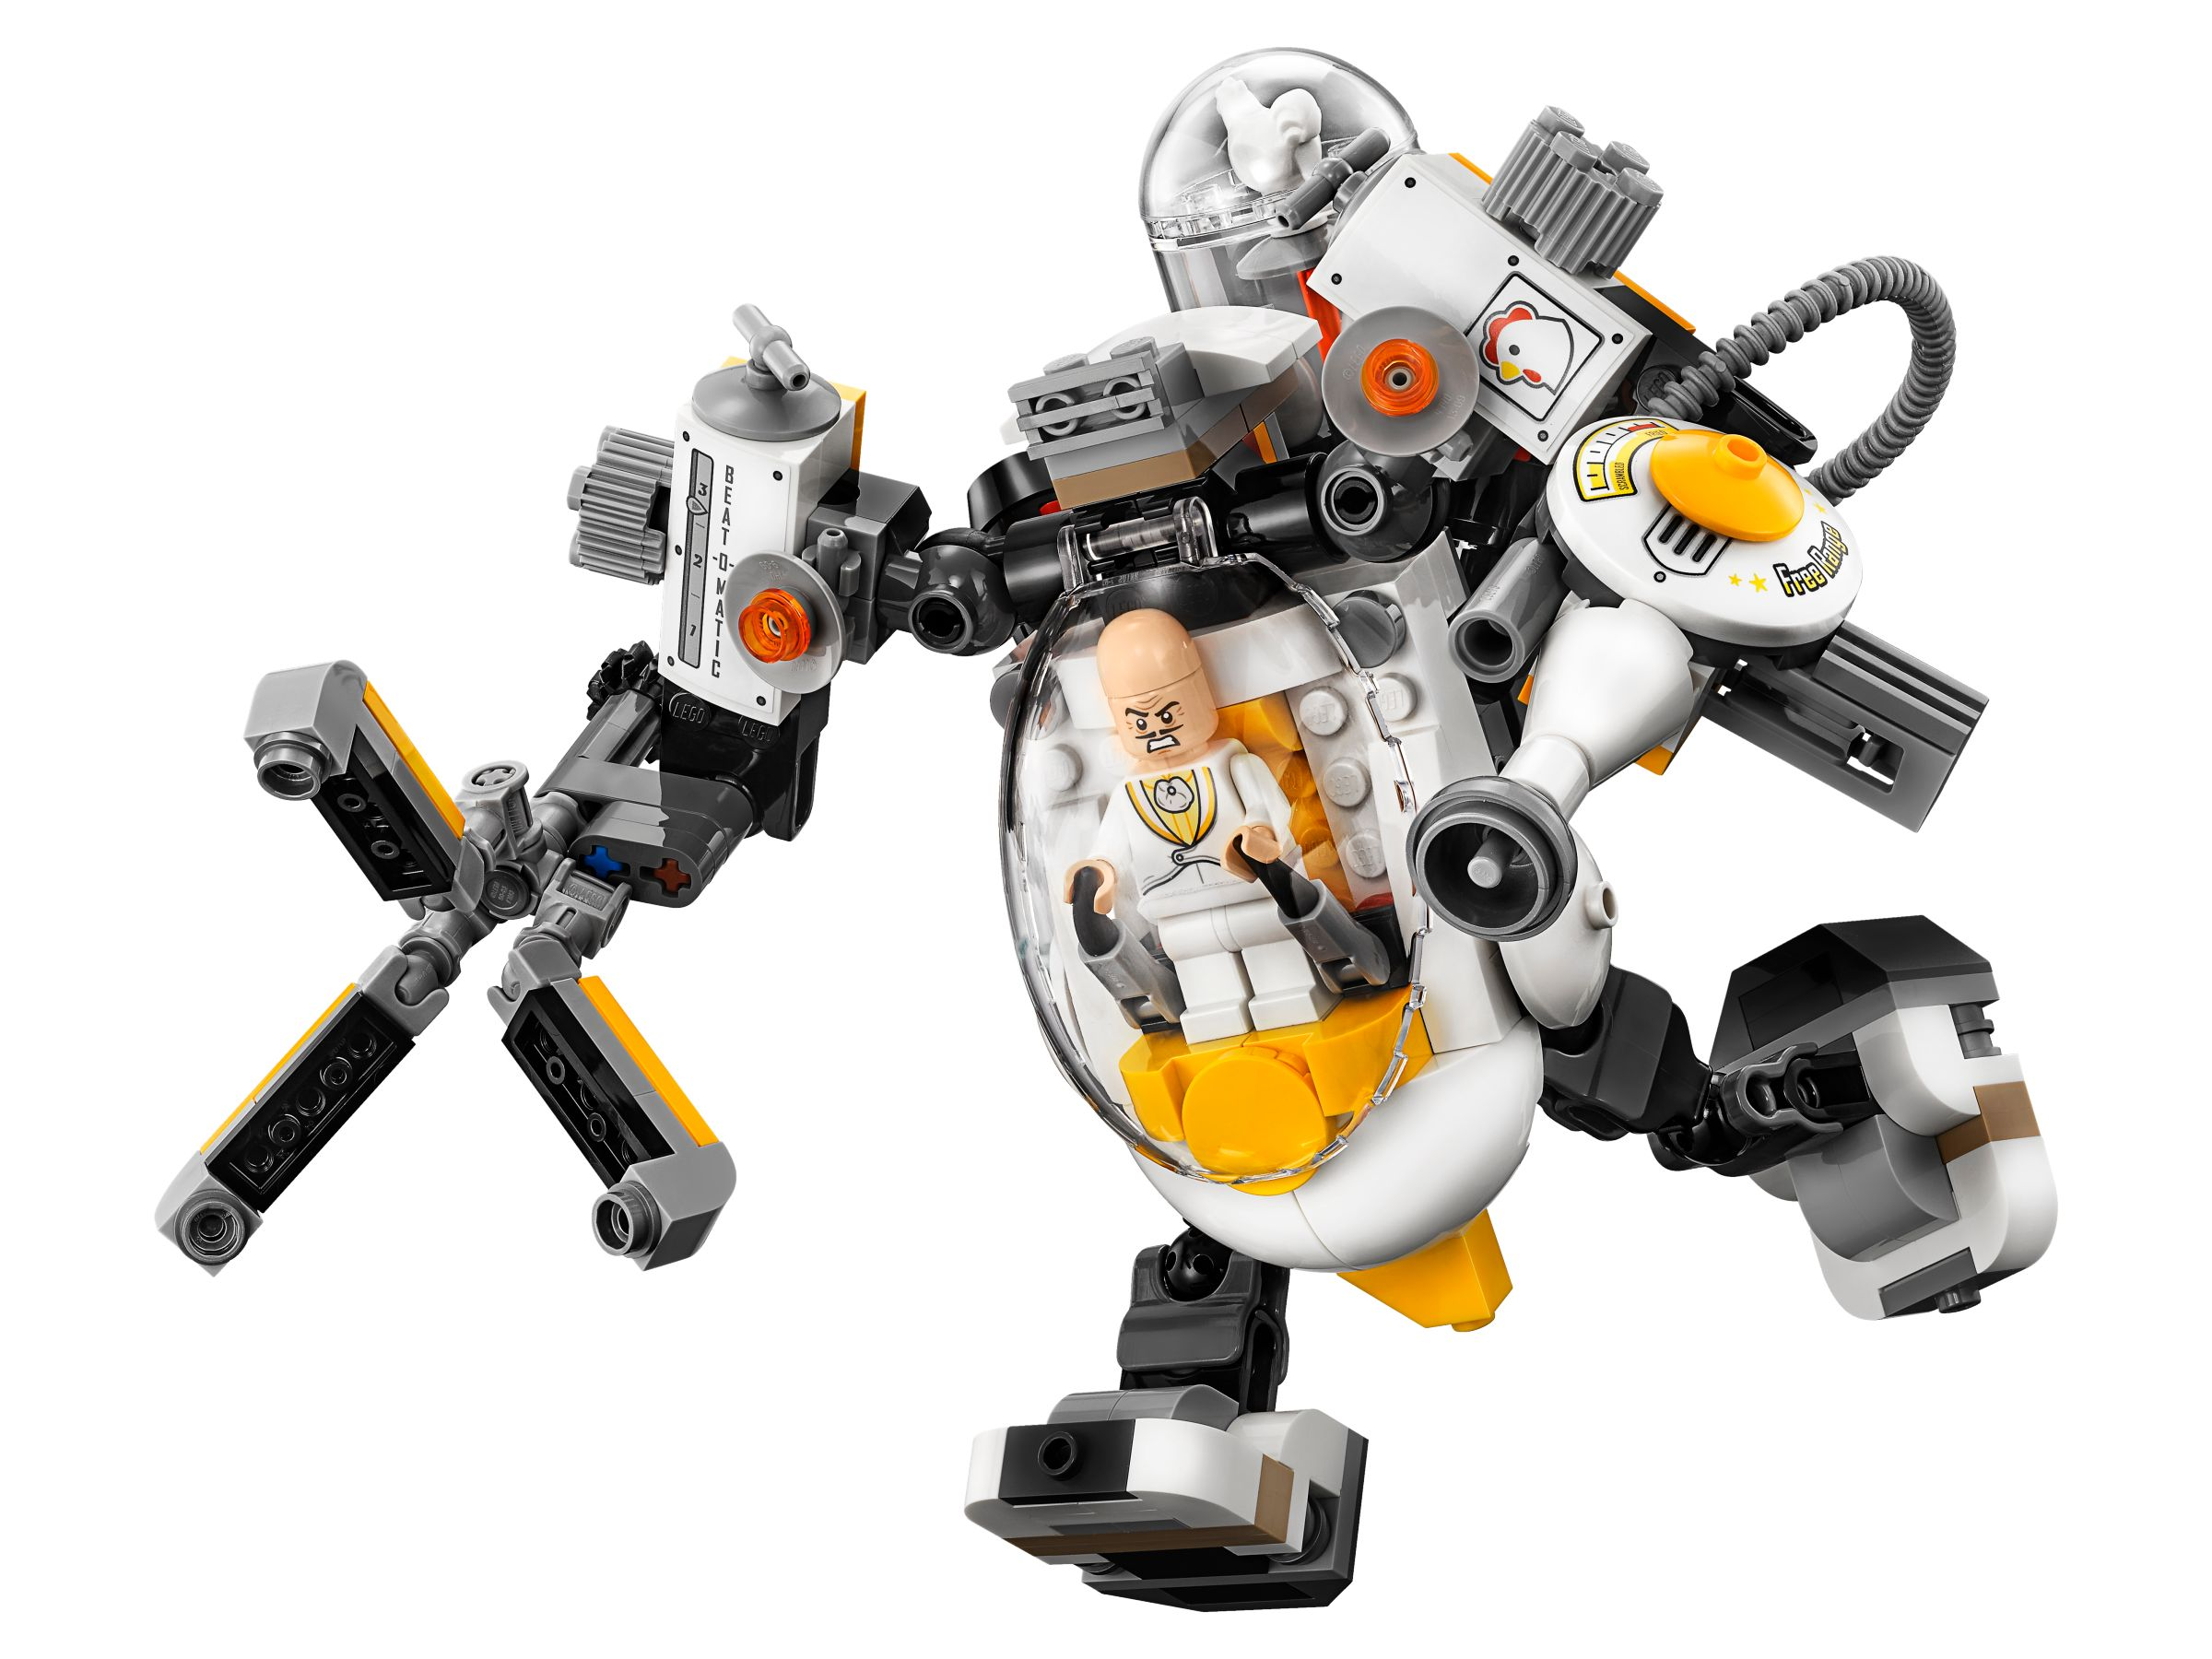 LEGO The LEGO Batman Movie 70920 Egghead bei der Roboter-Essenschlacht LEGO_70920_alt3.jpg